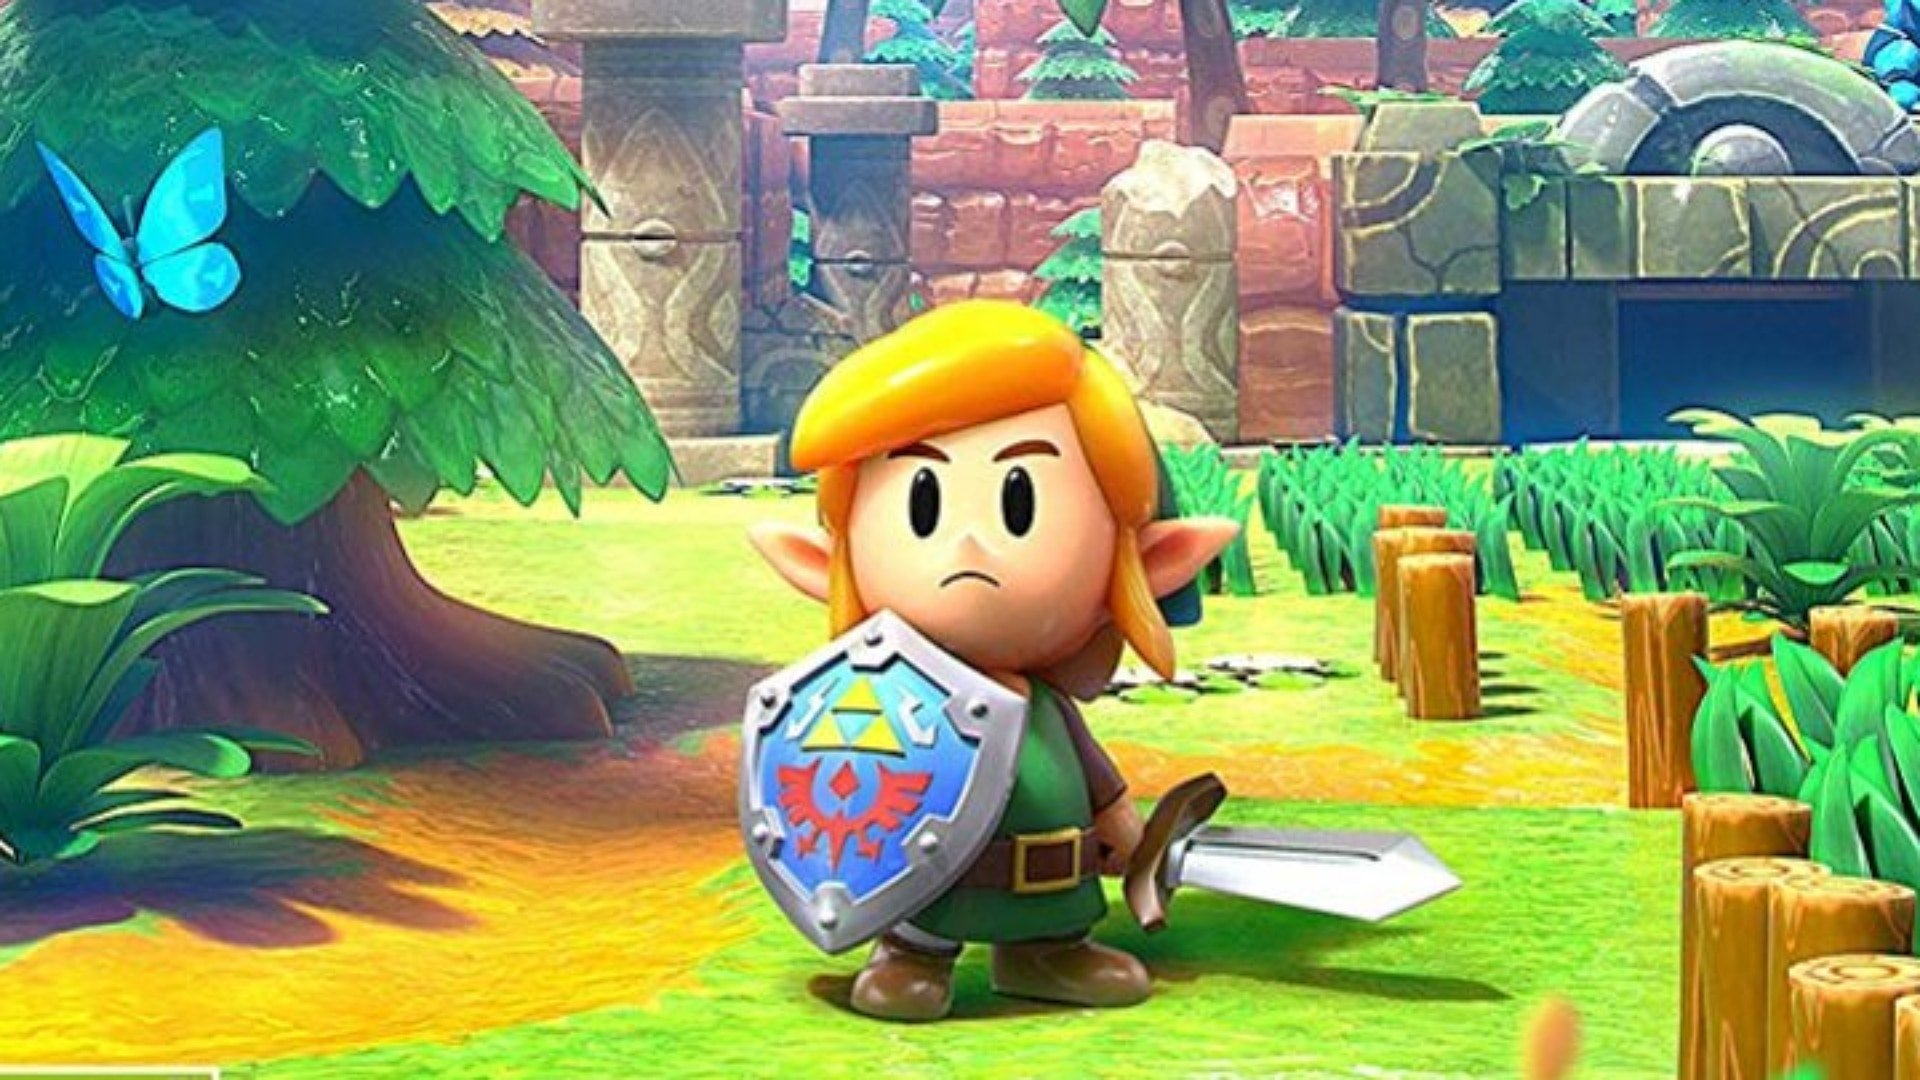 Zelda: Link's Awakening – Shy Guy & Boo Gameplay footage